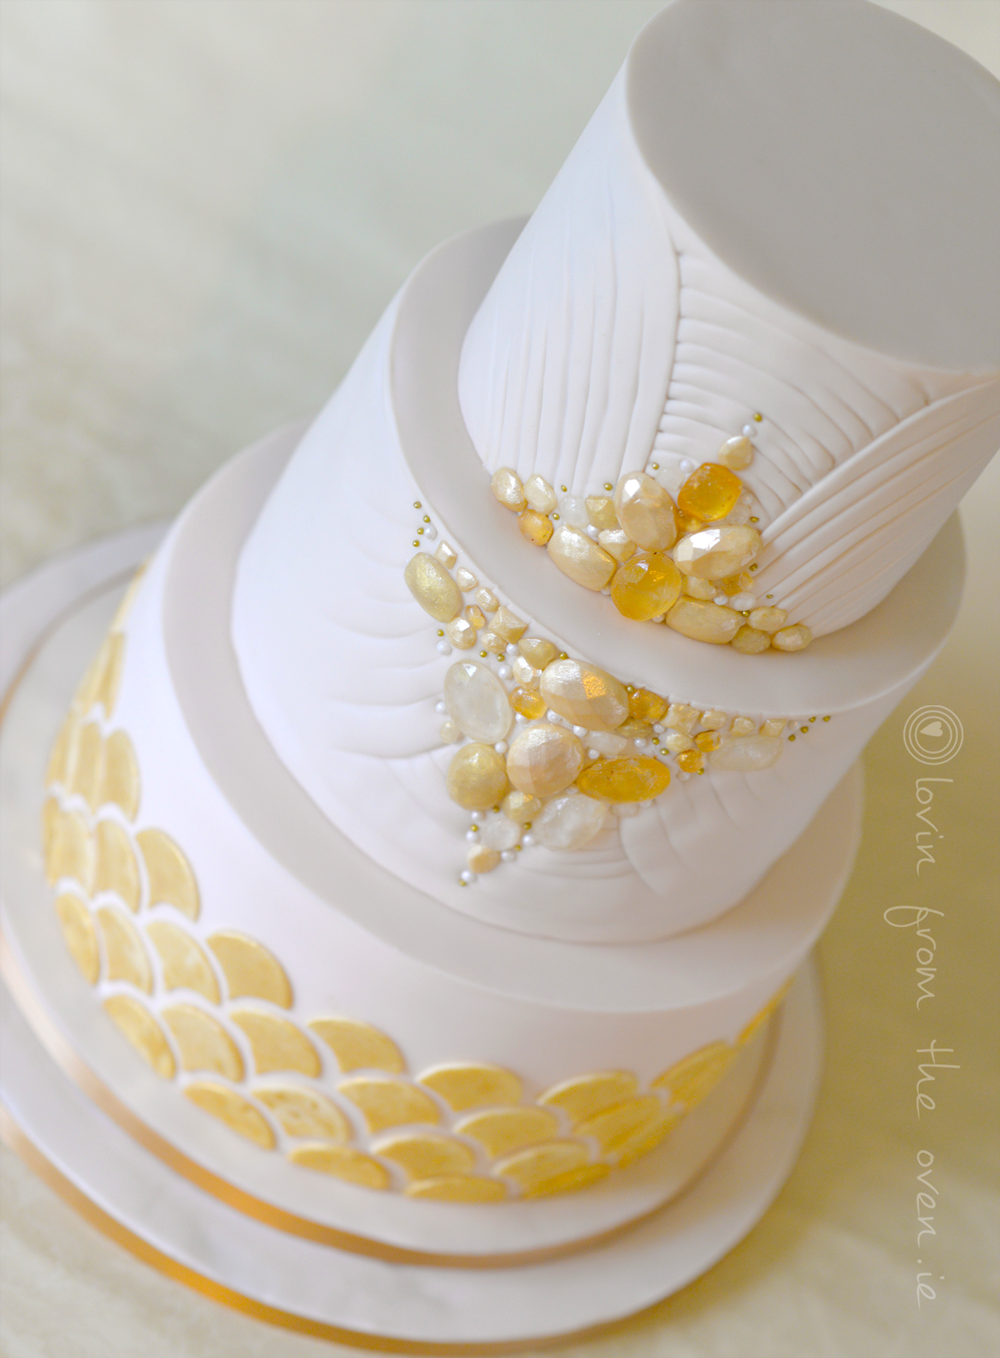 Art-Deco-Siobhan-Wedding-Cake-Angle